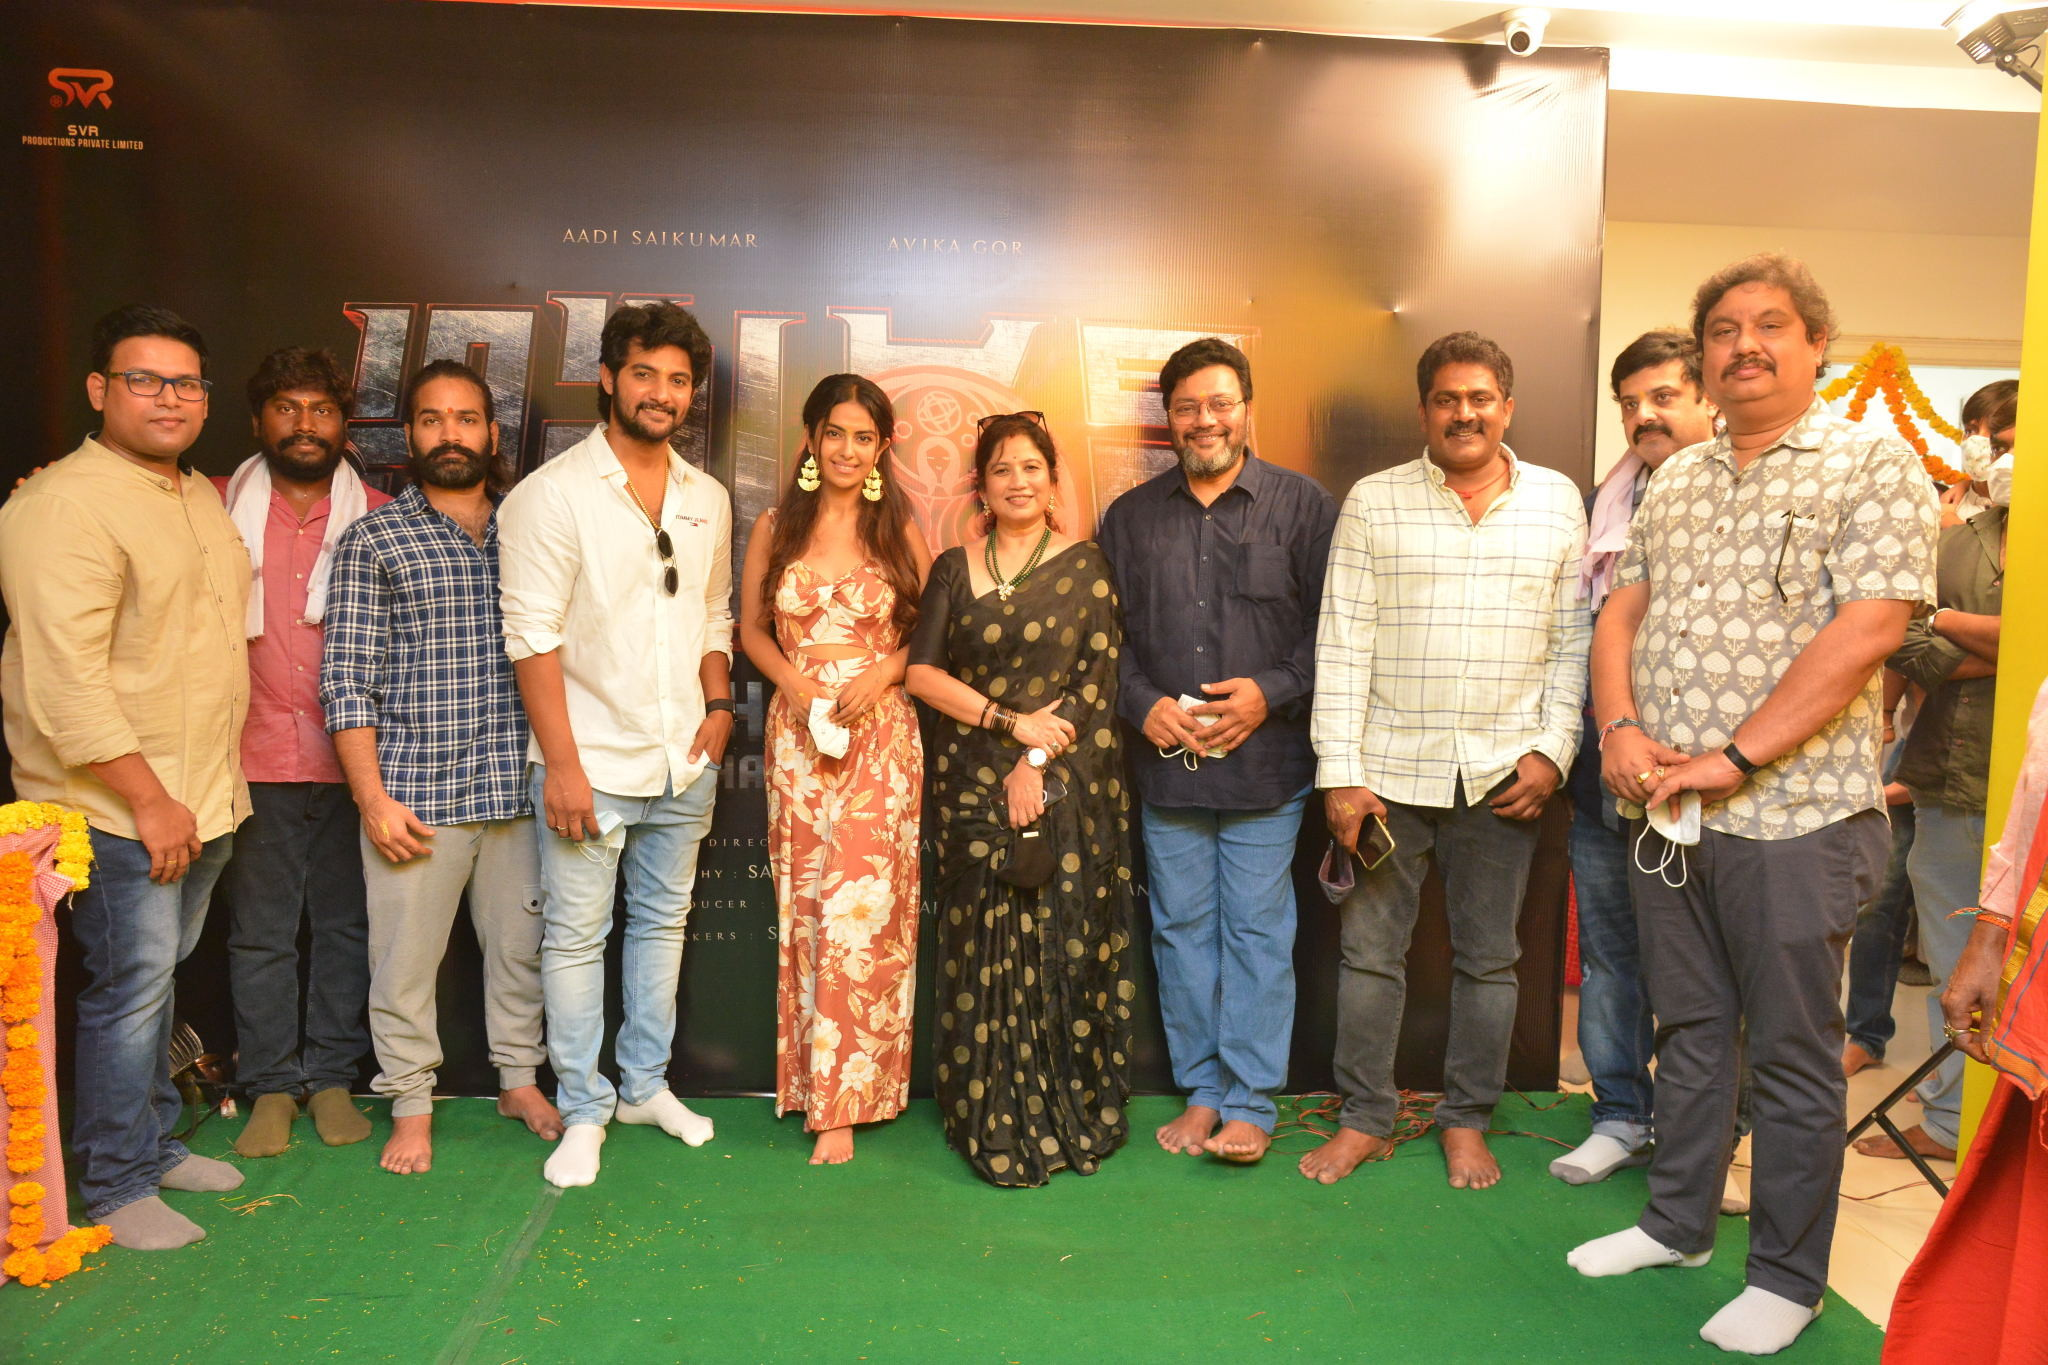 Aadi Saikumar, Avika Gor, SVR Production Amaran In The City- Chapter 1 Presented by The Prestigious Gemini Is Launched